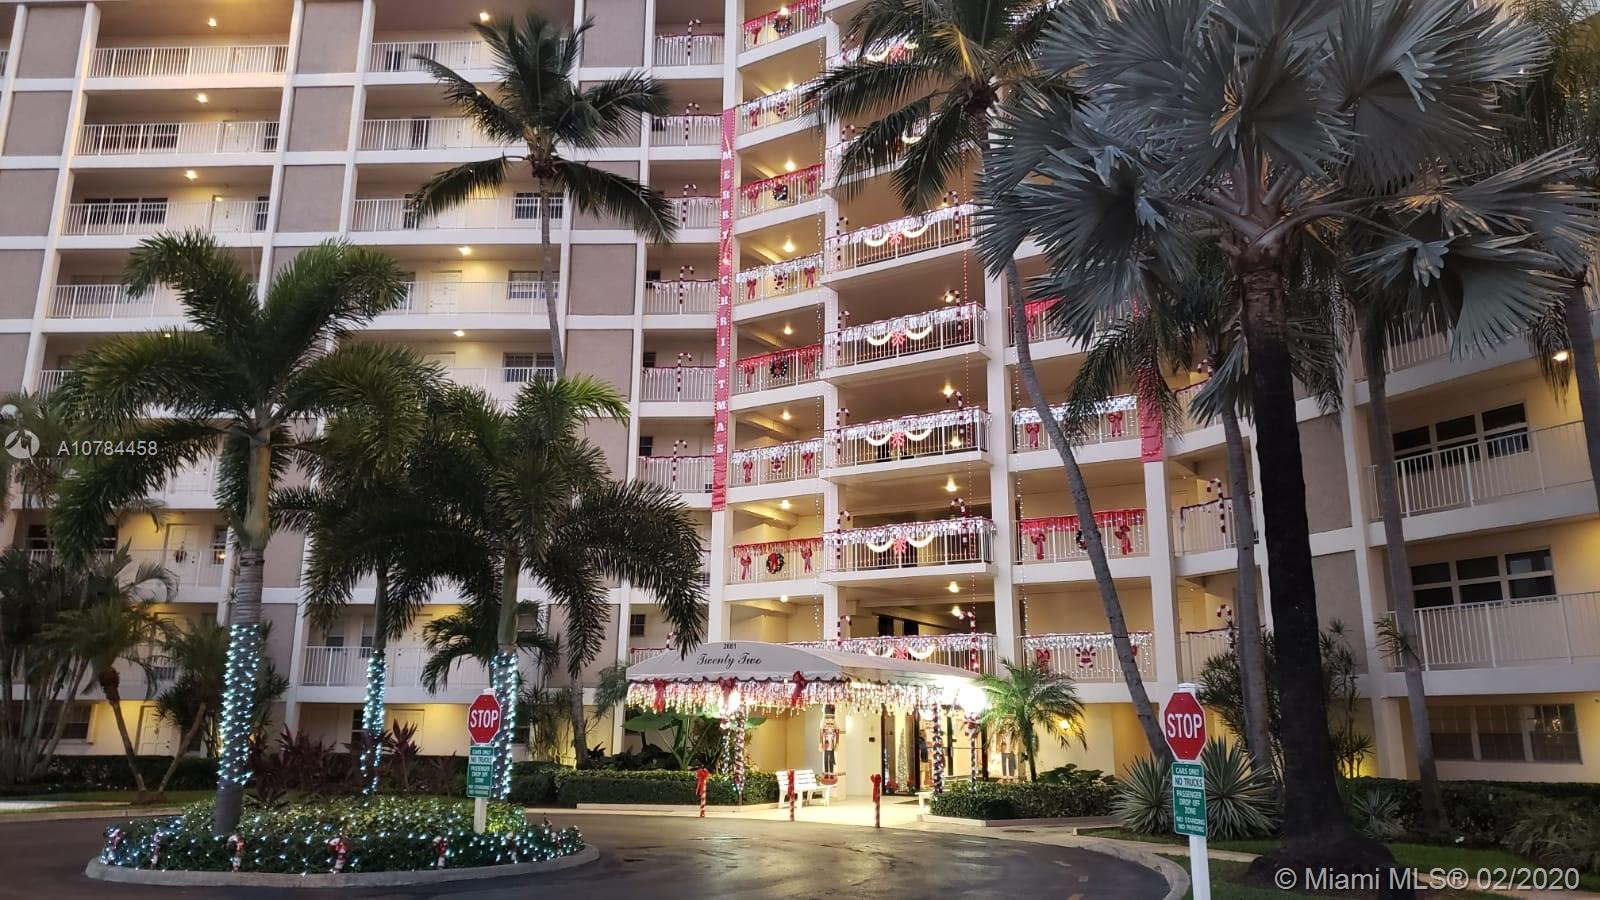 2086 SQFT! Beautiful apartment in Pompano Beach! This is the only KING size model in the area, the largest 3/2 model in Palmaire with 2086 sqft according to the original purchase contract but priced as a 1700sqft unit! Don't miss it! The assigned parking spot is steps away from the apartment! Ready to move, nicely remodeled. Gorgoeus Marble and wood floors. Granite counter top in kitchen. Impact Windows. Must see! Maintenance includes, water, trash, basic cable and internet! 20% MINIMUM DOWN PAYMENT REQUIRED BY ASSOCIATION.